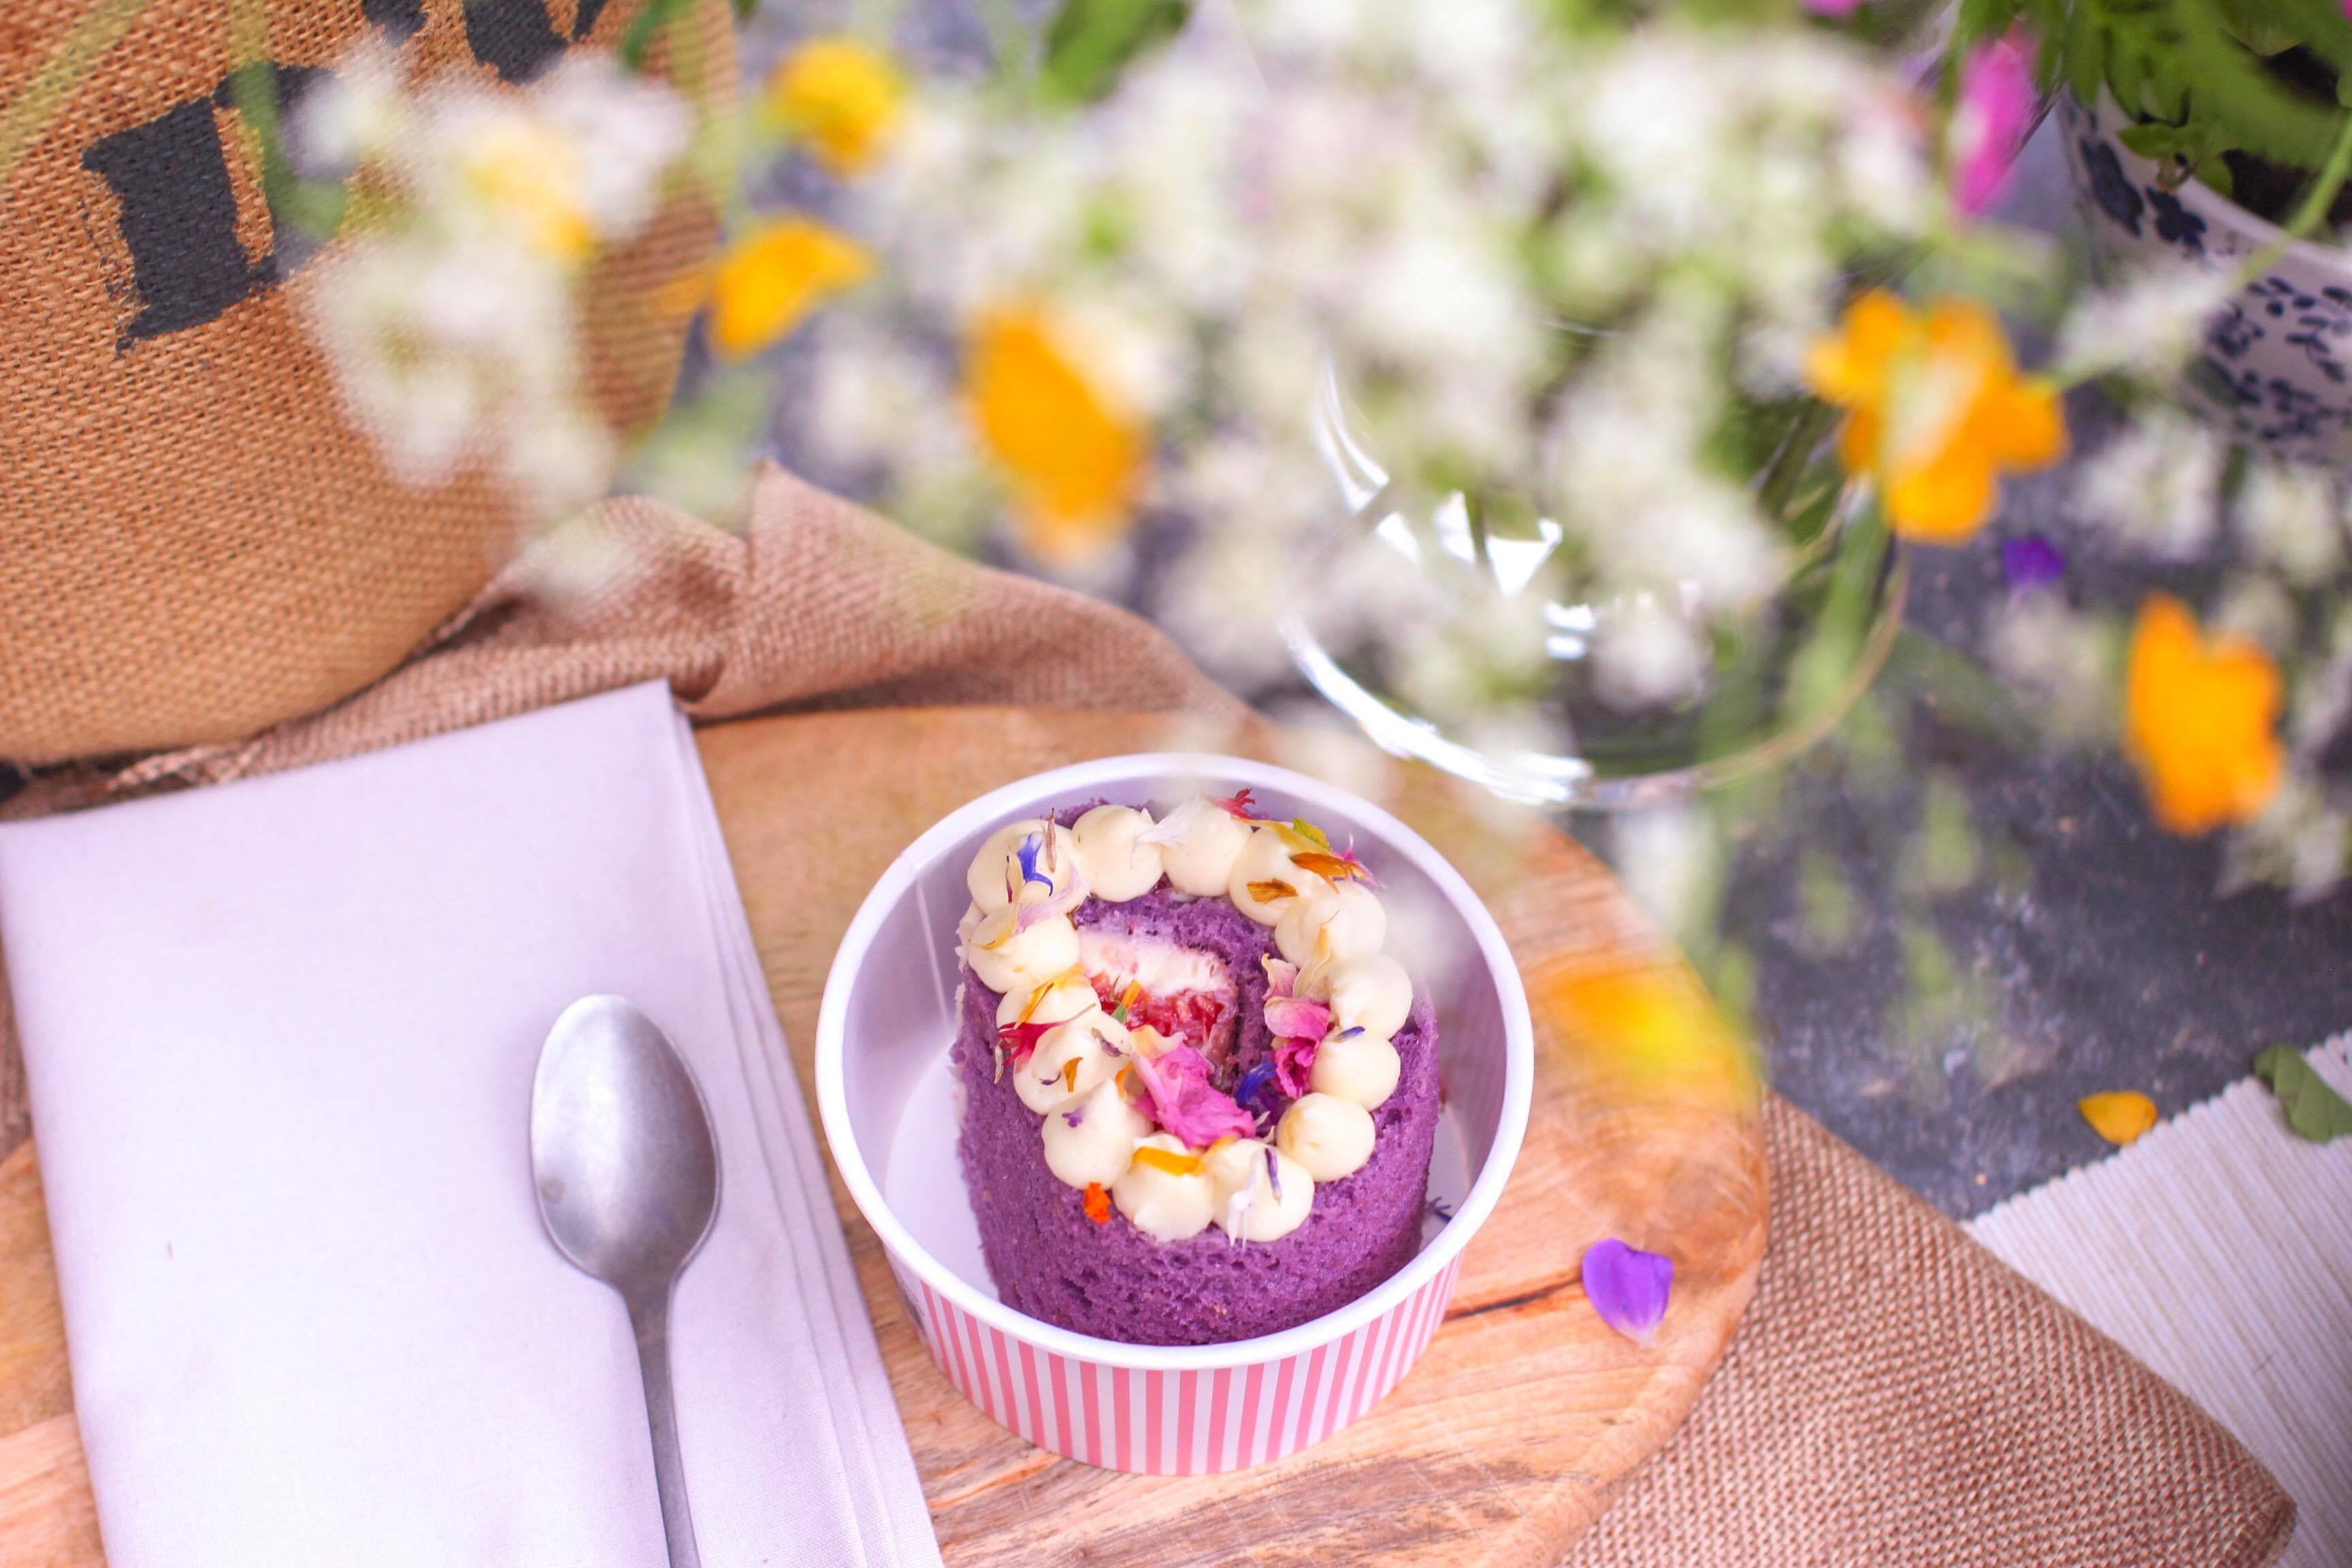 purple and white icing cake on white ramekin bowl